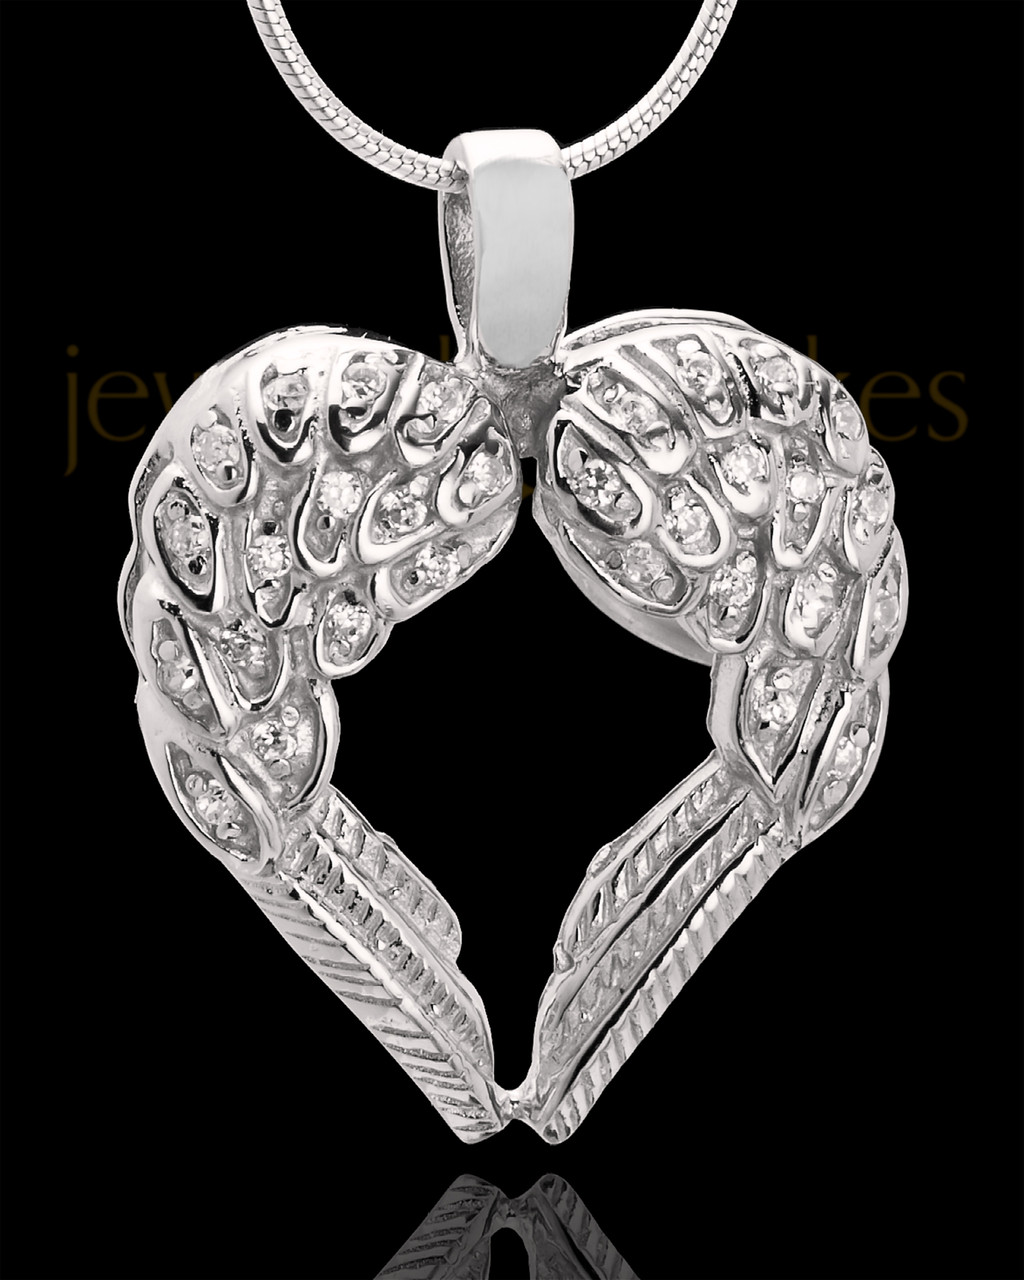 q pendants wing sterling personalised necklace silver pendant angel winged heart original necklaces